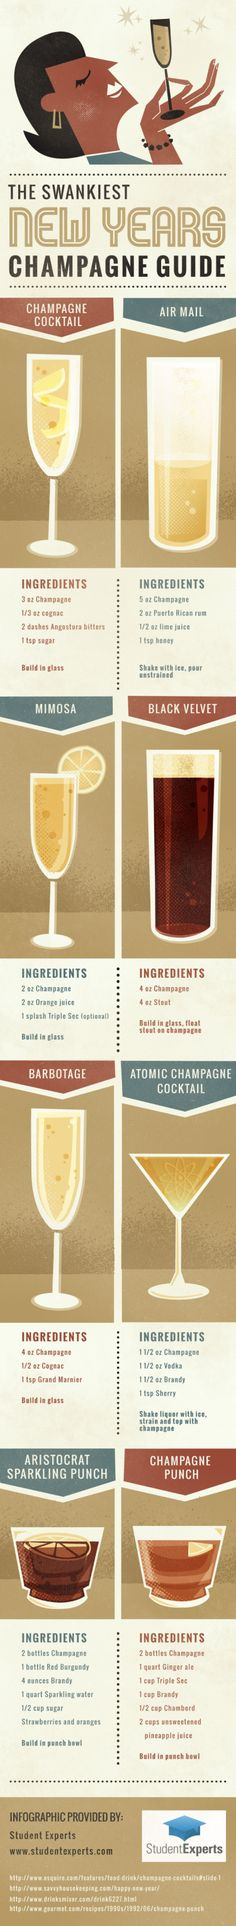 The Swankiest New Year's Champagne Guide